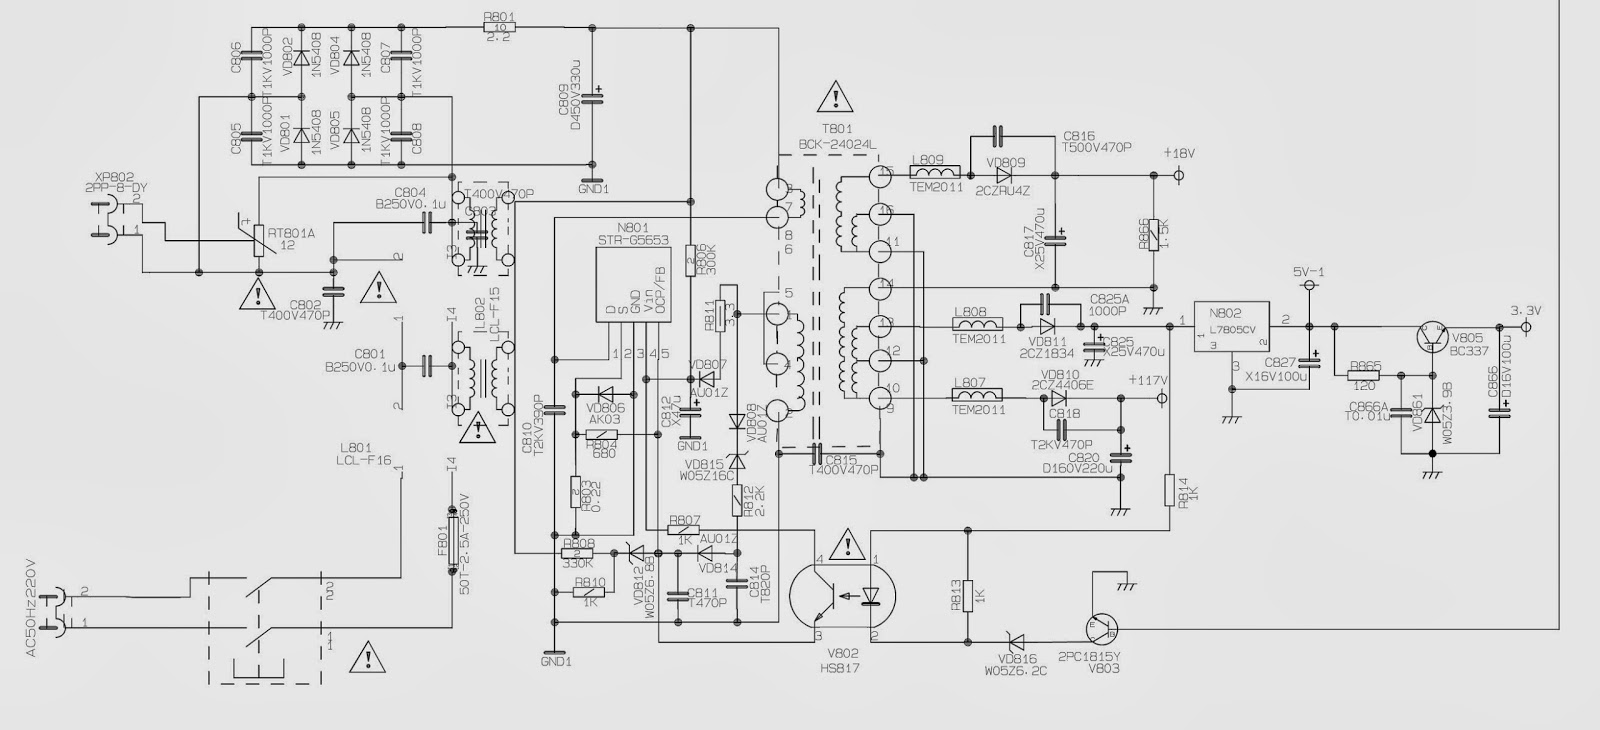 Emerson remote control wiring diagram wiring diagram str g5653 based tv smps schematic circuit diagram electro help emerson ceiling fan wiring diagram emerson remote control wiring diagram swarovskicordoba Images